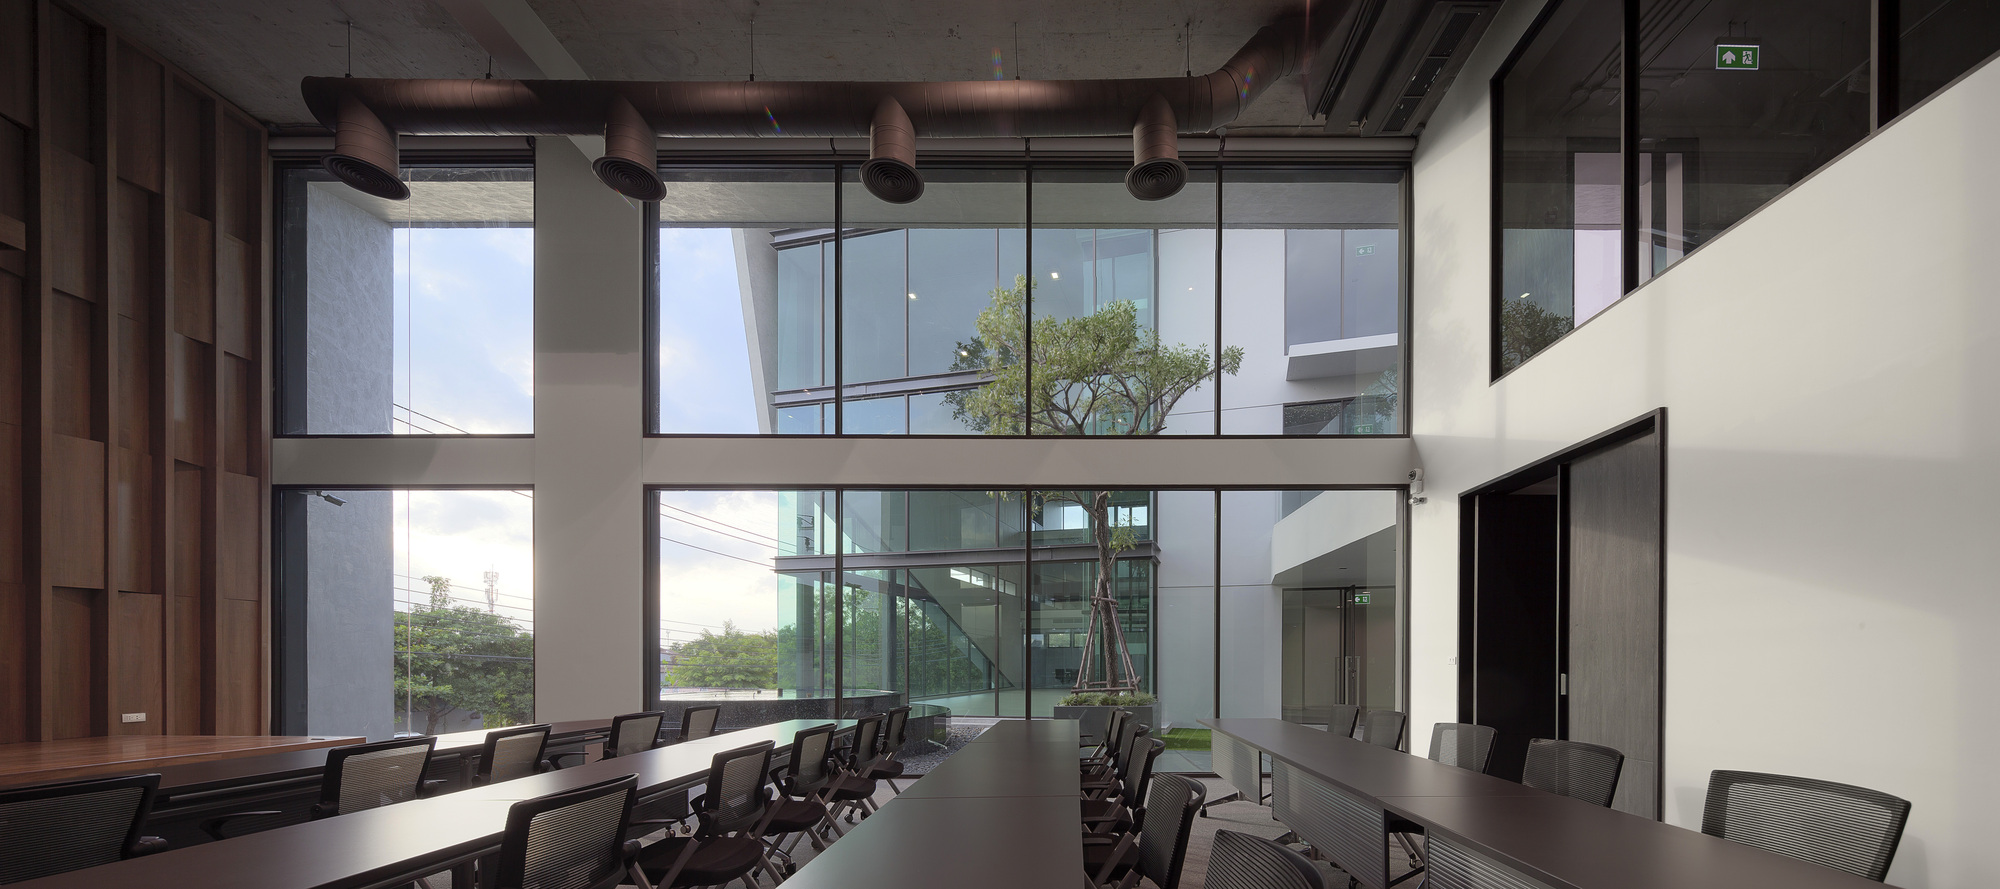 Gallery Of Exion Office Building I Like Design Studio 27